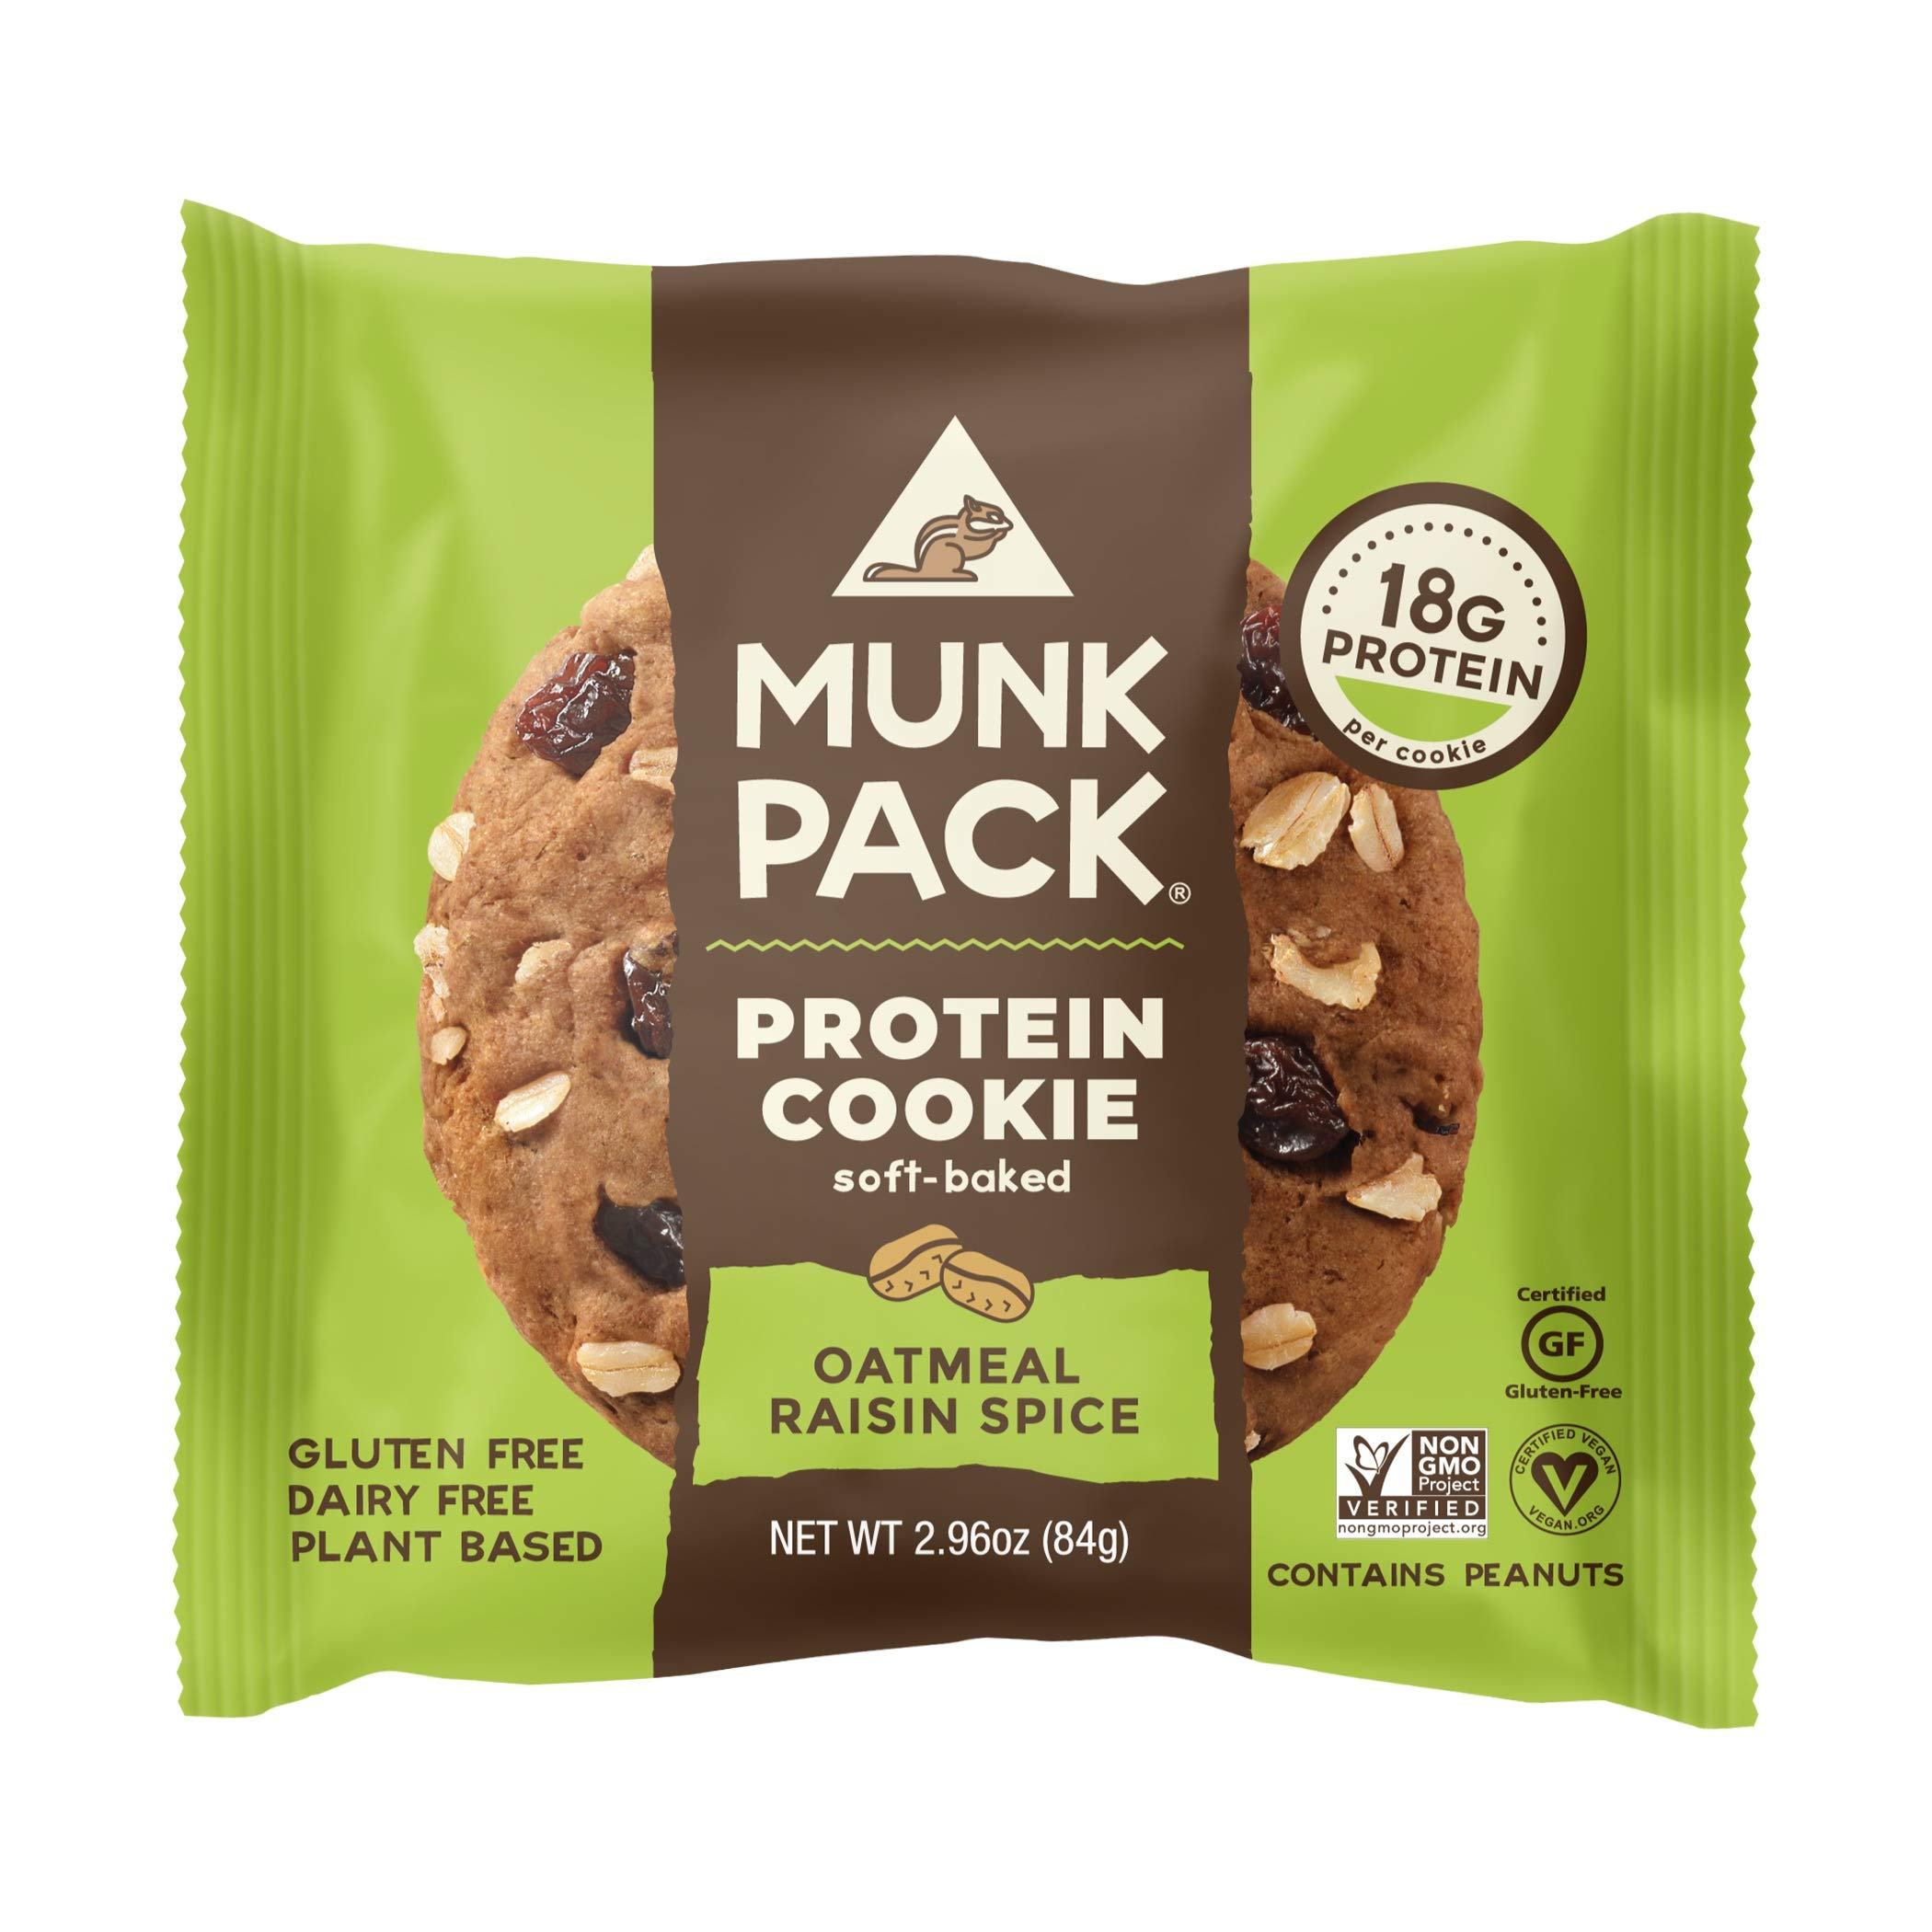 Munk Pack Oatmeal Raisin Spice Protein Cookie with 18 Grams of Protein | Soft Baked | Vegan | Gluten, Dairy and Soy Free | 12 Pack by Munk Pack